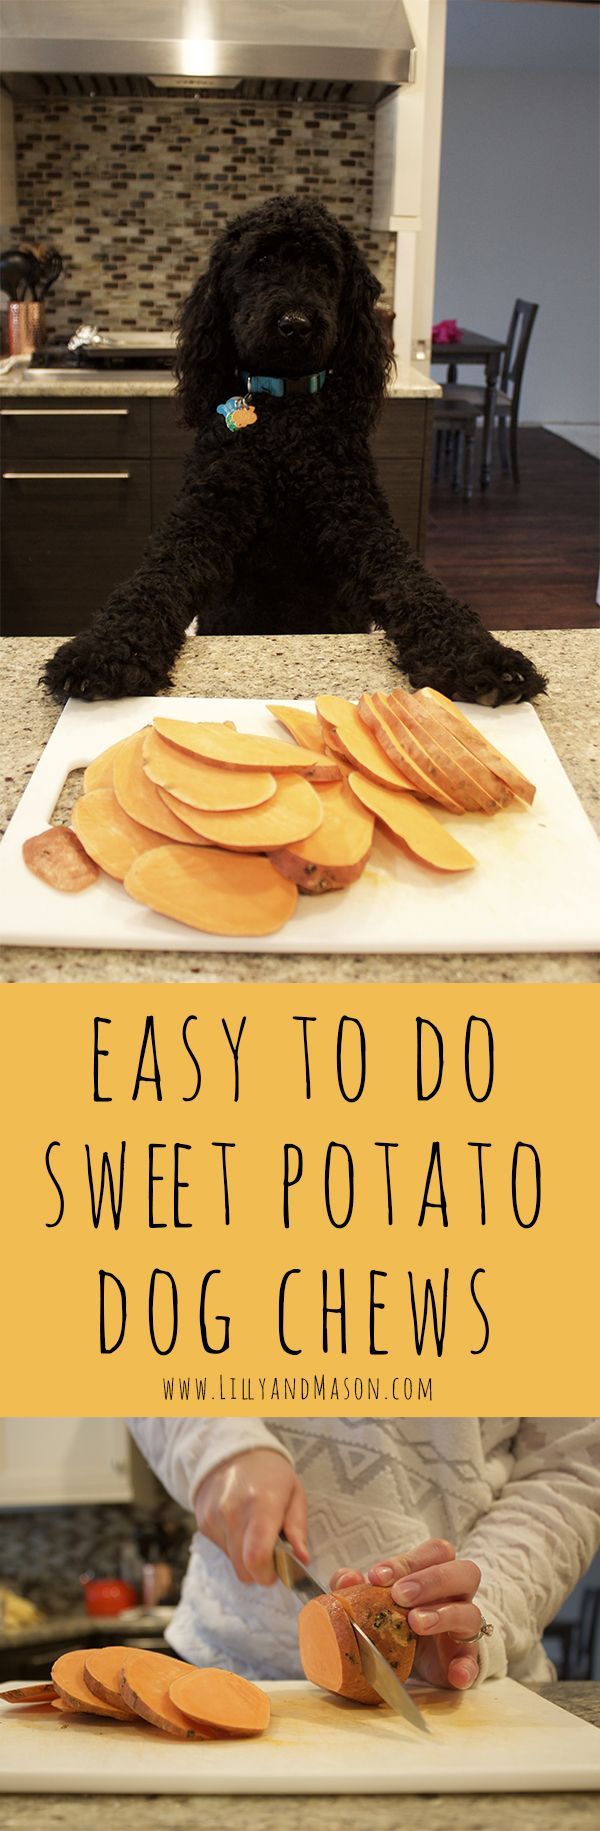 Save $20 and make your dog's favorite sweet potato chew right at your own home. One ingredient, 3 hours, and a hot oven will get you exactly what your pup is looking for. Visit www.lillyandmason.com to see the easy to do recipe today!